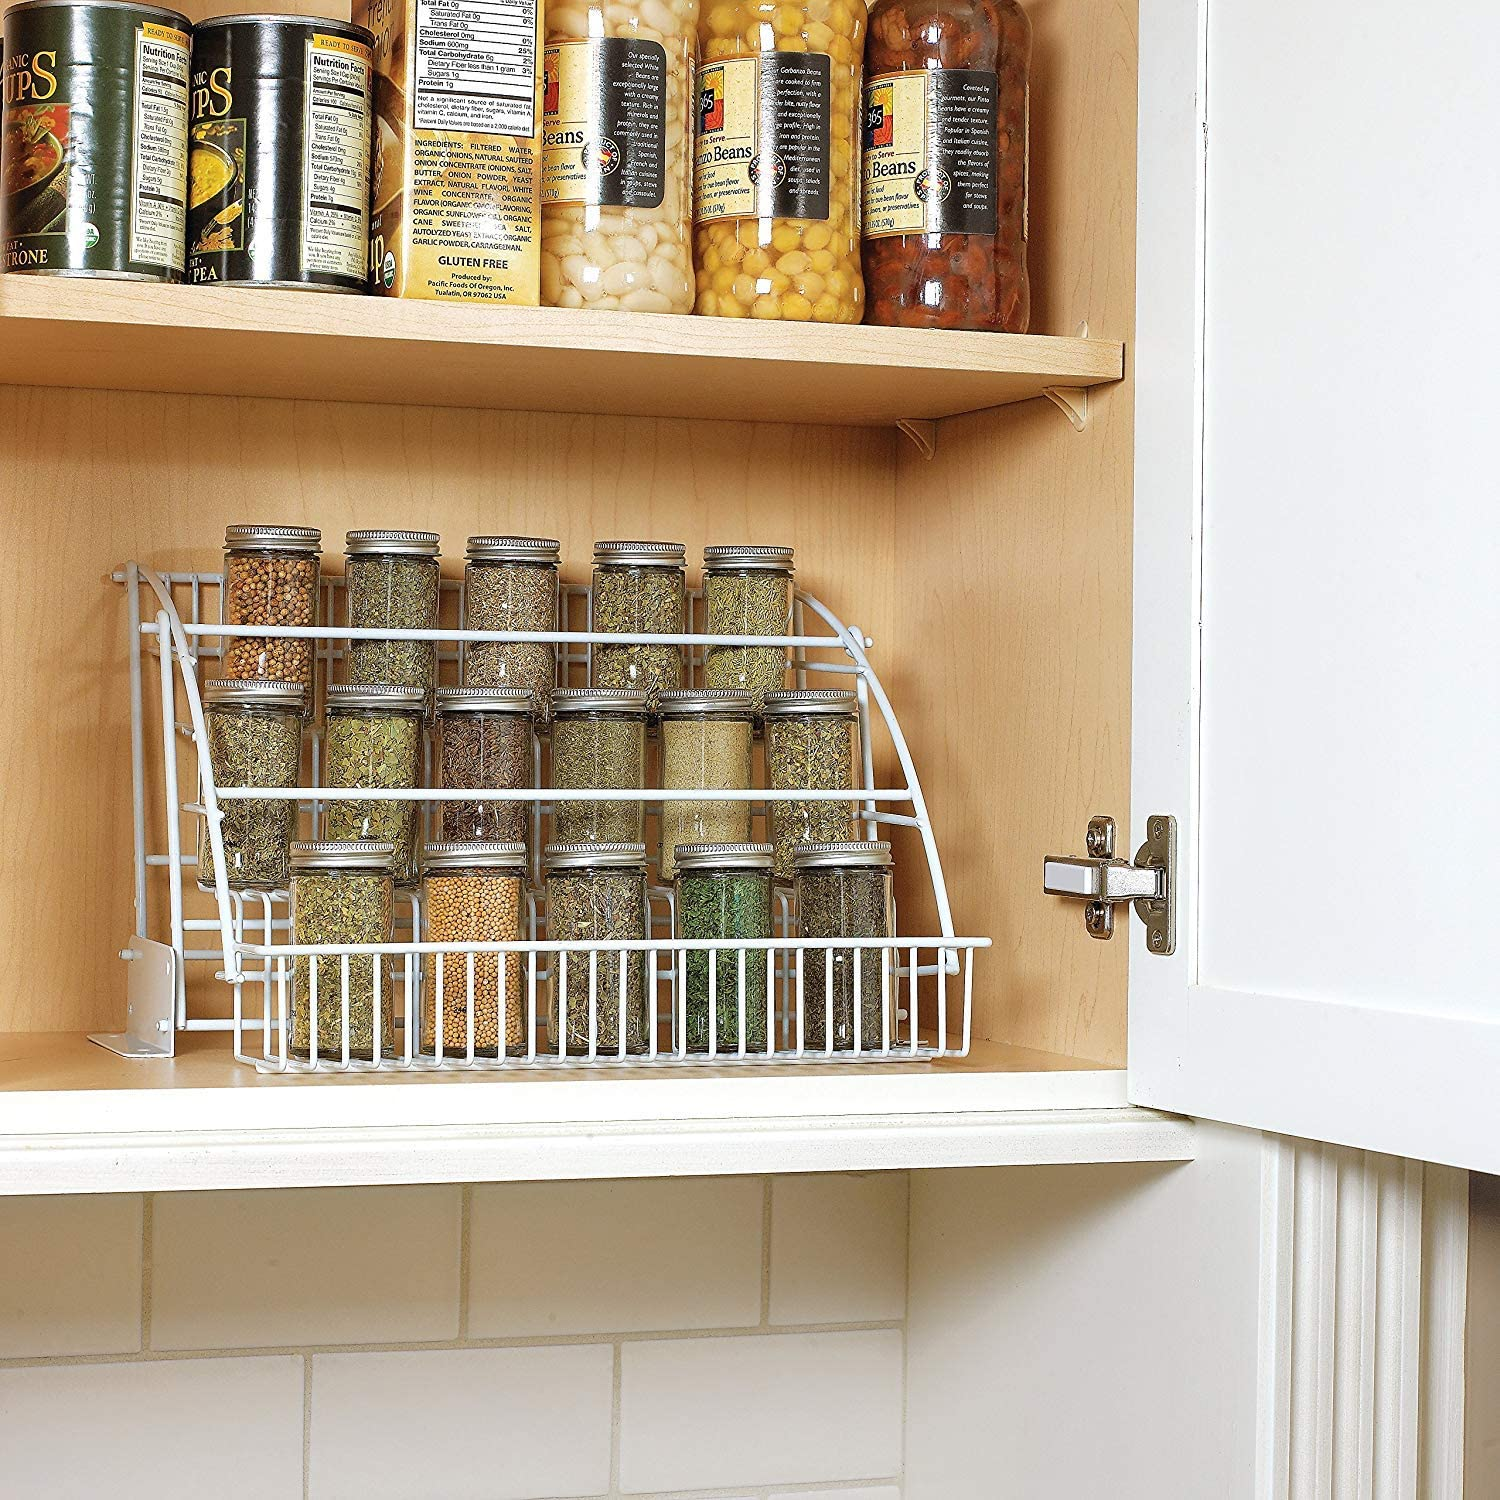 White Spice Rack Rubbermaid 3-Tier Step Shelf Pull Down Spice Rack - Easy View Salt Pepper Powders Flakes Herb Containers - Kitchen Pantry Cabinet Cupboard Organization